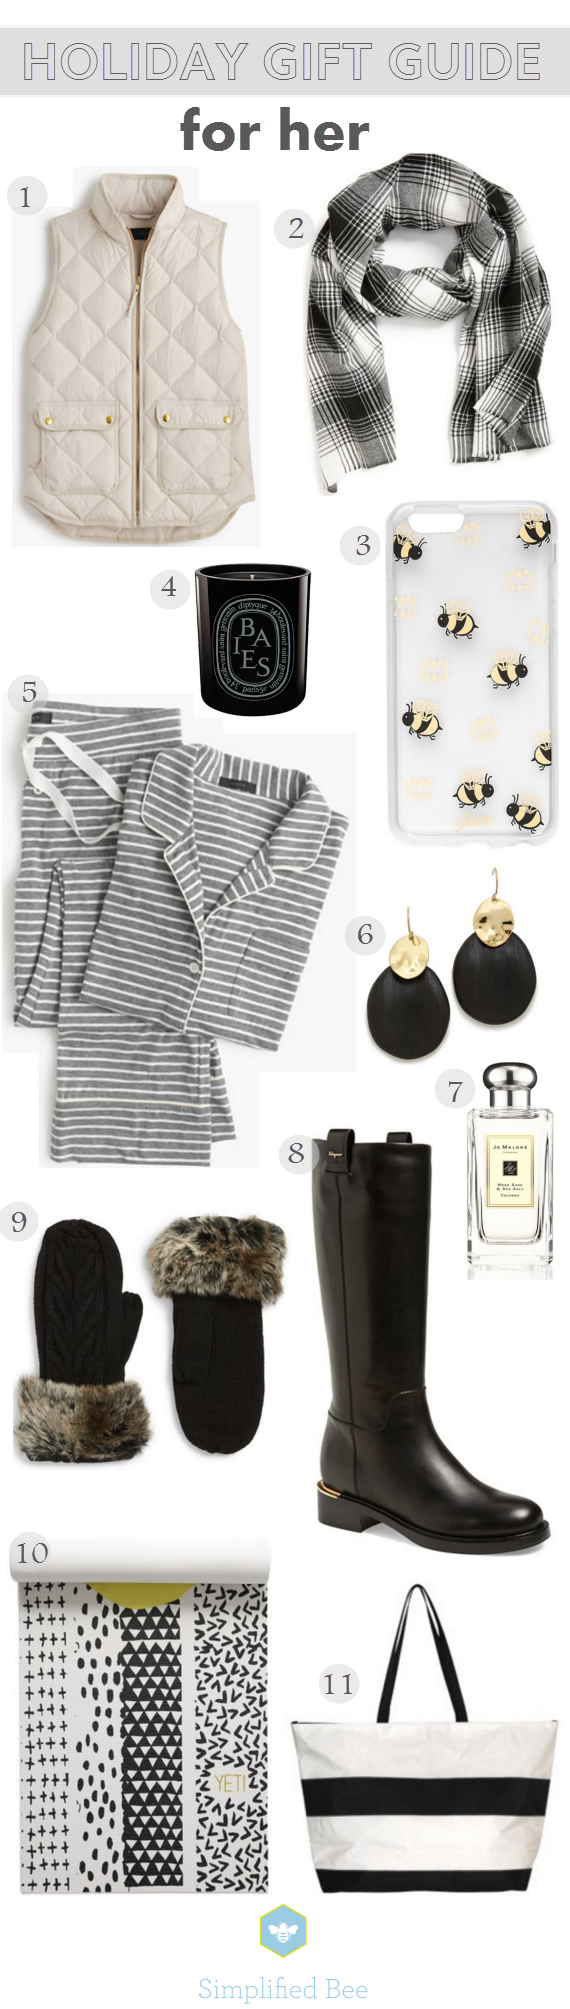 holiday gift guide 2015 for her // via @simplifiedbee #holiday #gifts